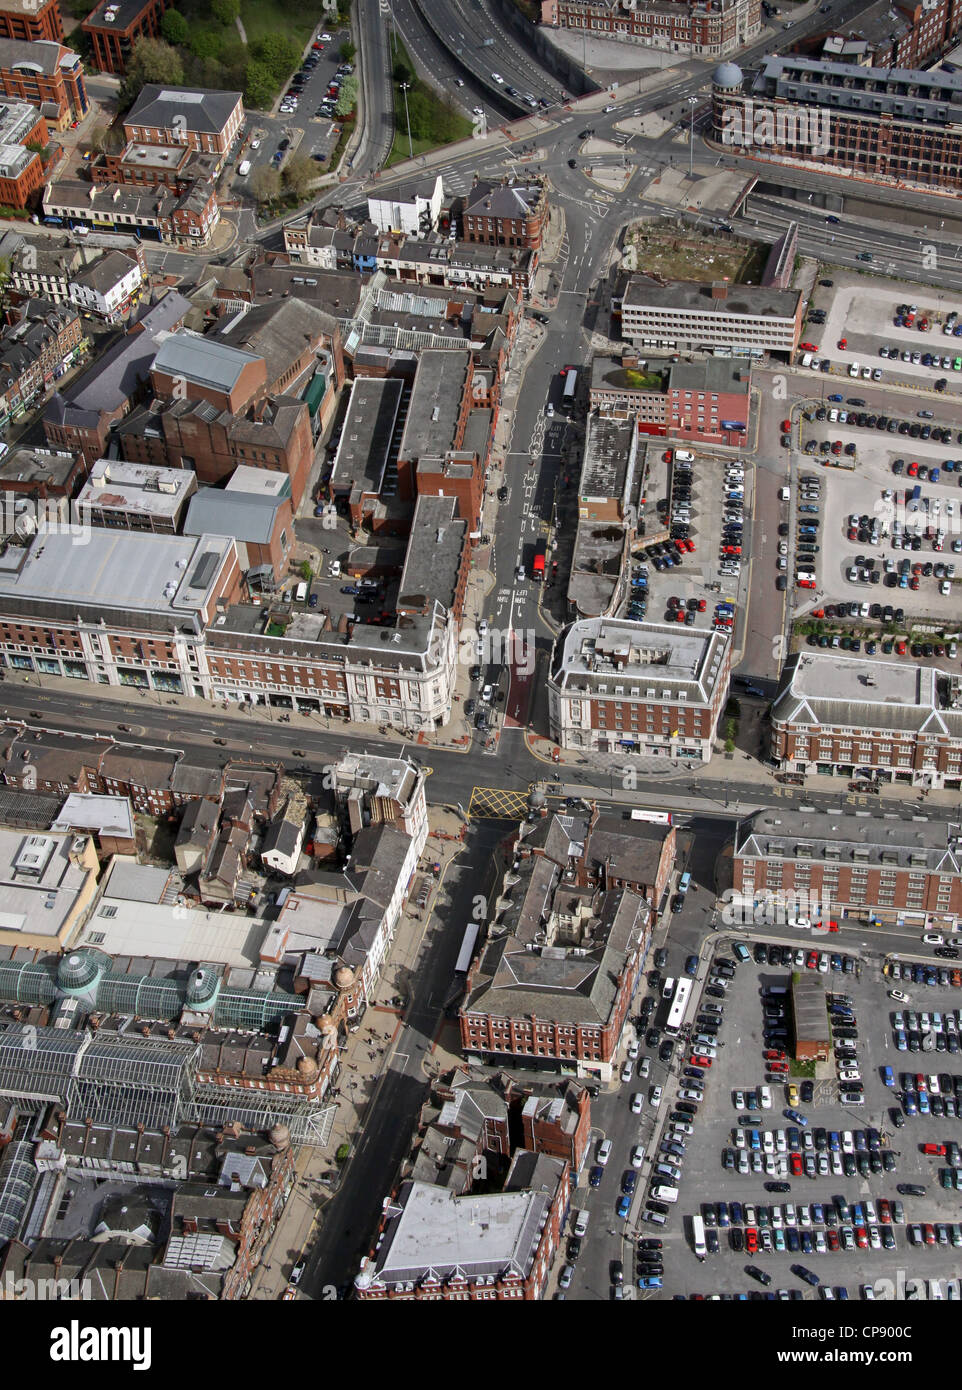 aerial view of the intersection of Vicar Lane and the Headrow in Leeds - Stock Image